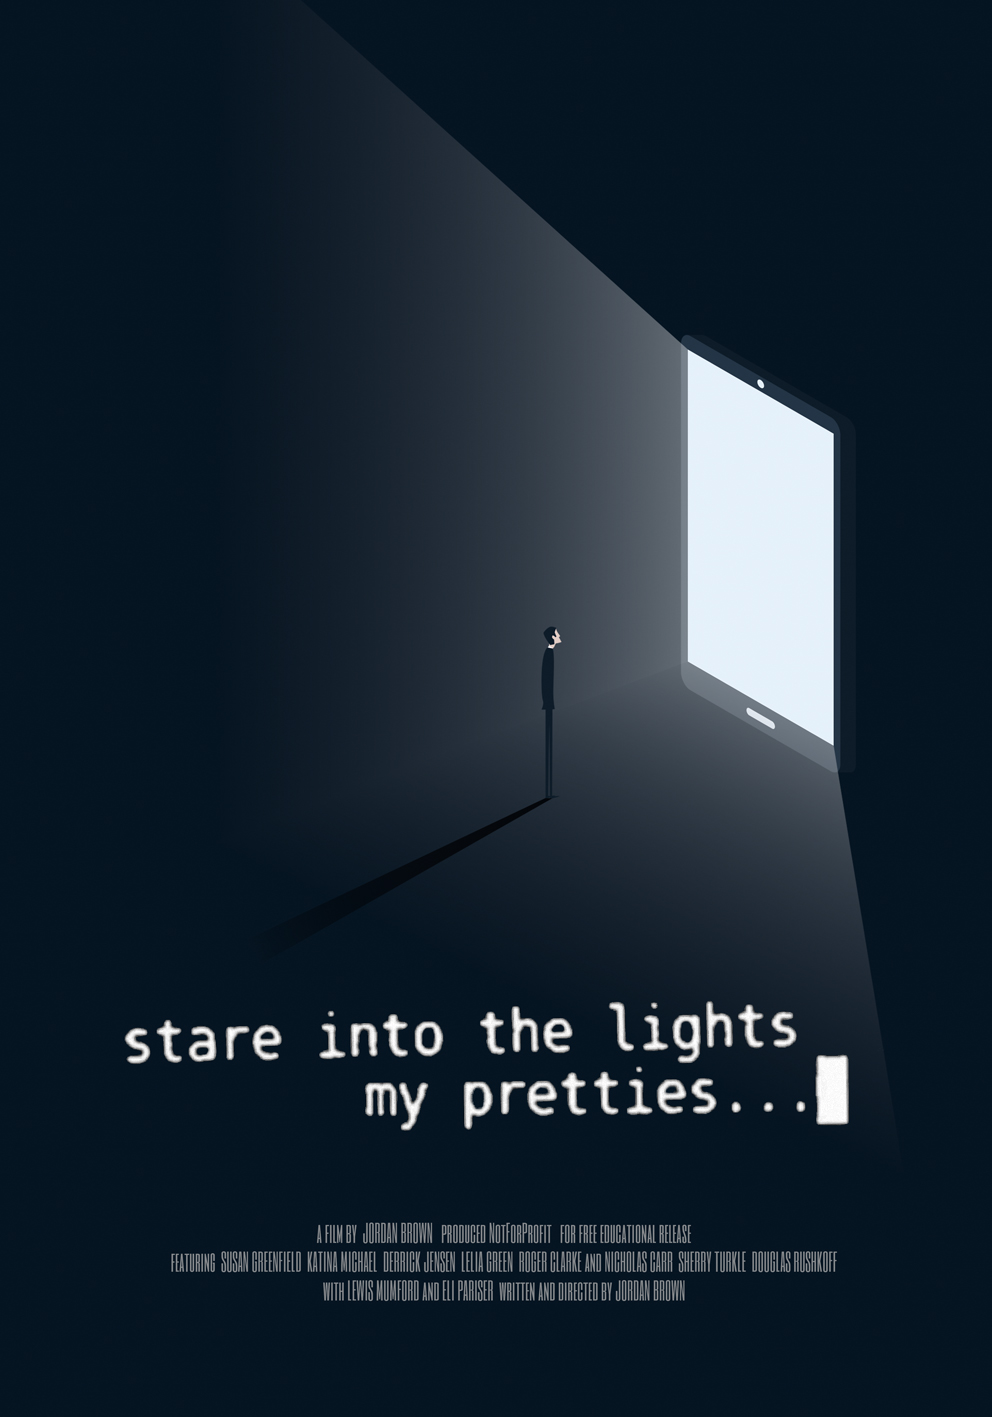 Vasco Non Stop Download Stare Into The Lights My Pretties Jordan Brown Free Download